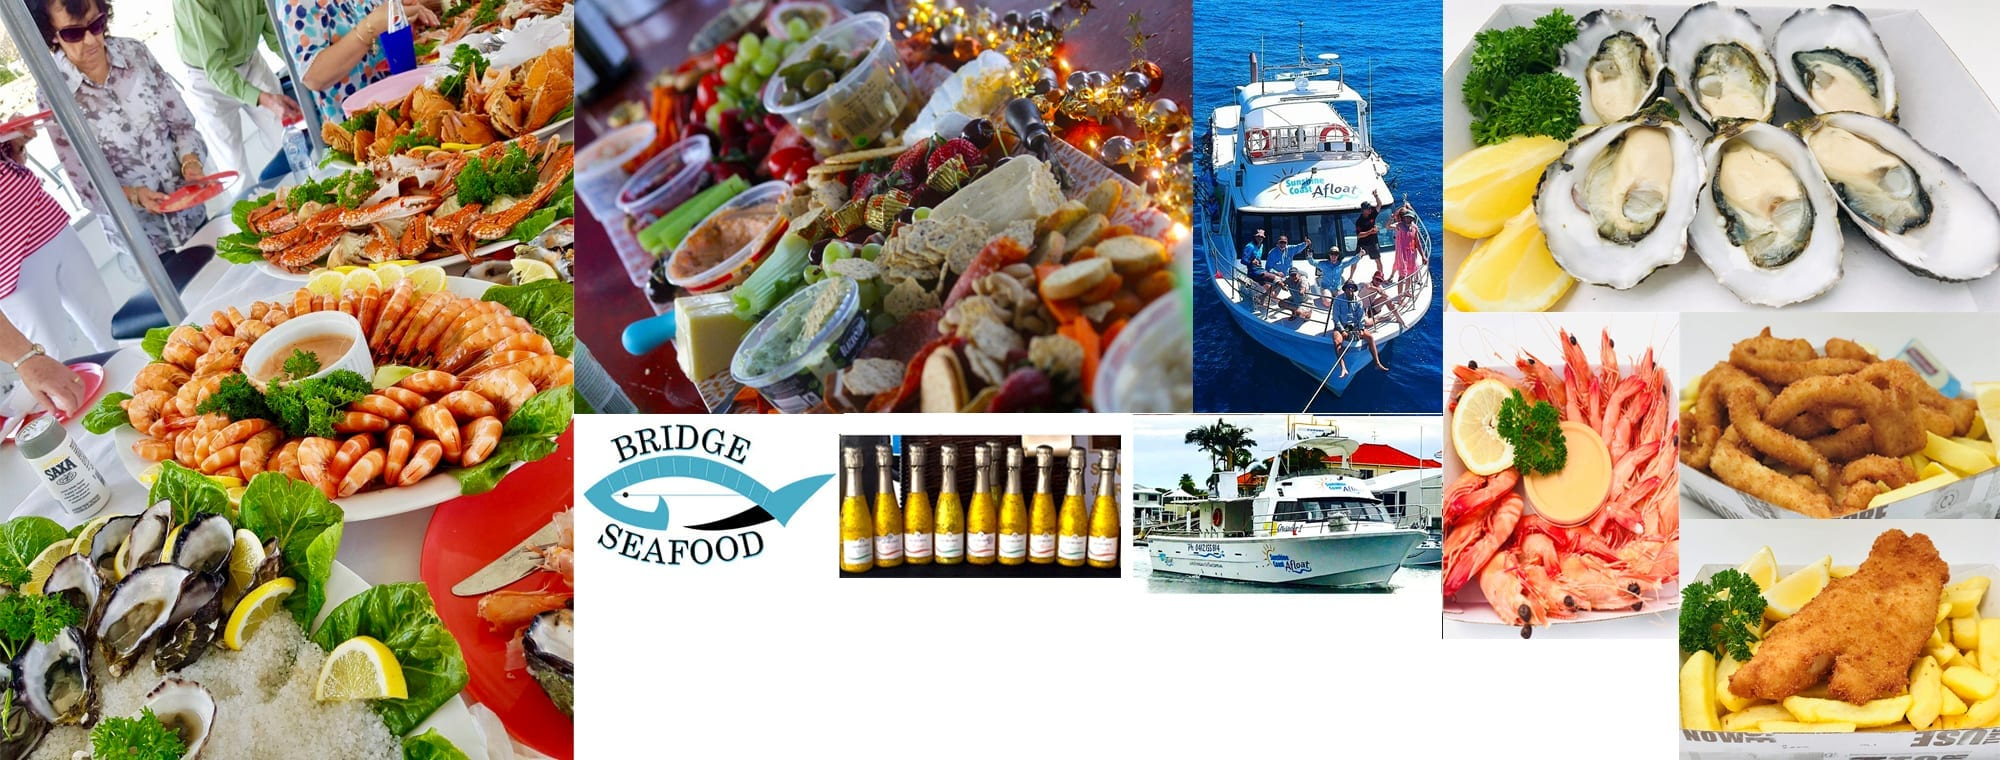 1 ½ HR SEAFOOD XMAS LIGHTS CRUISE